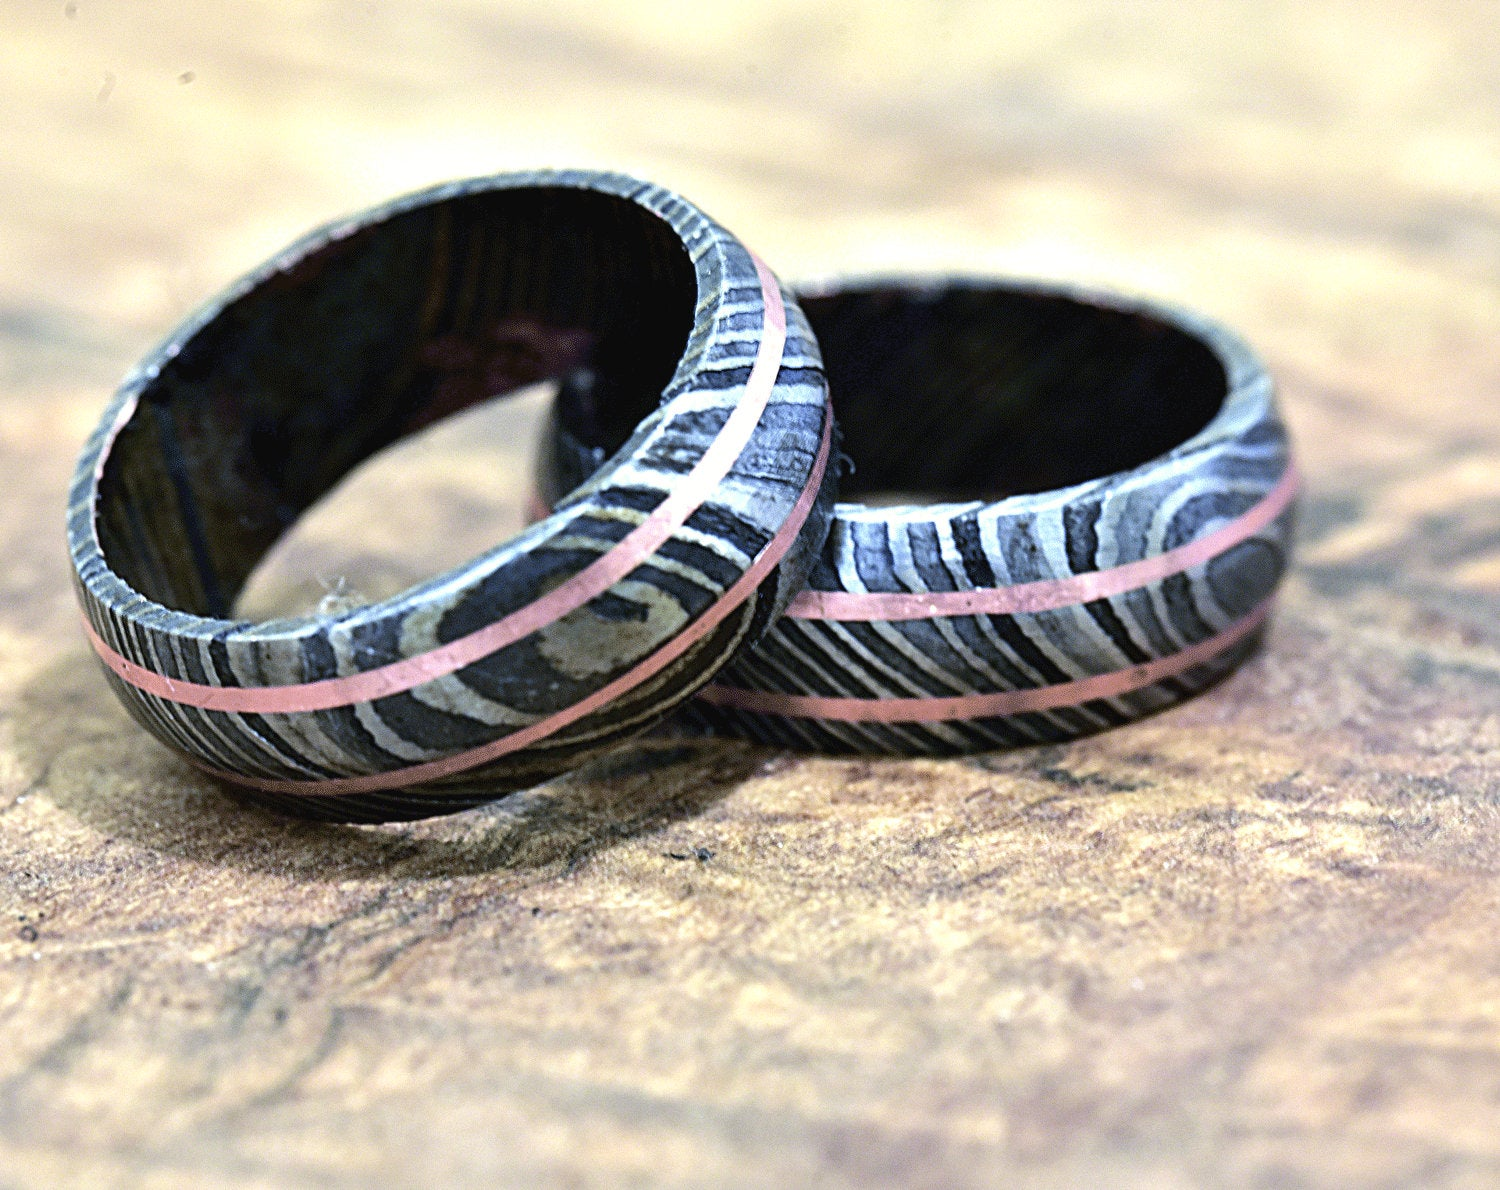 Damascus Ring, Hand Forged & Finished Damascus Steel Ring, Copper Inlay Hand Carved, US size 11 ring, wedding band, engagement ring - SHOKUNIN USA